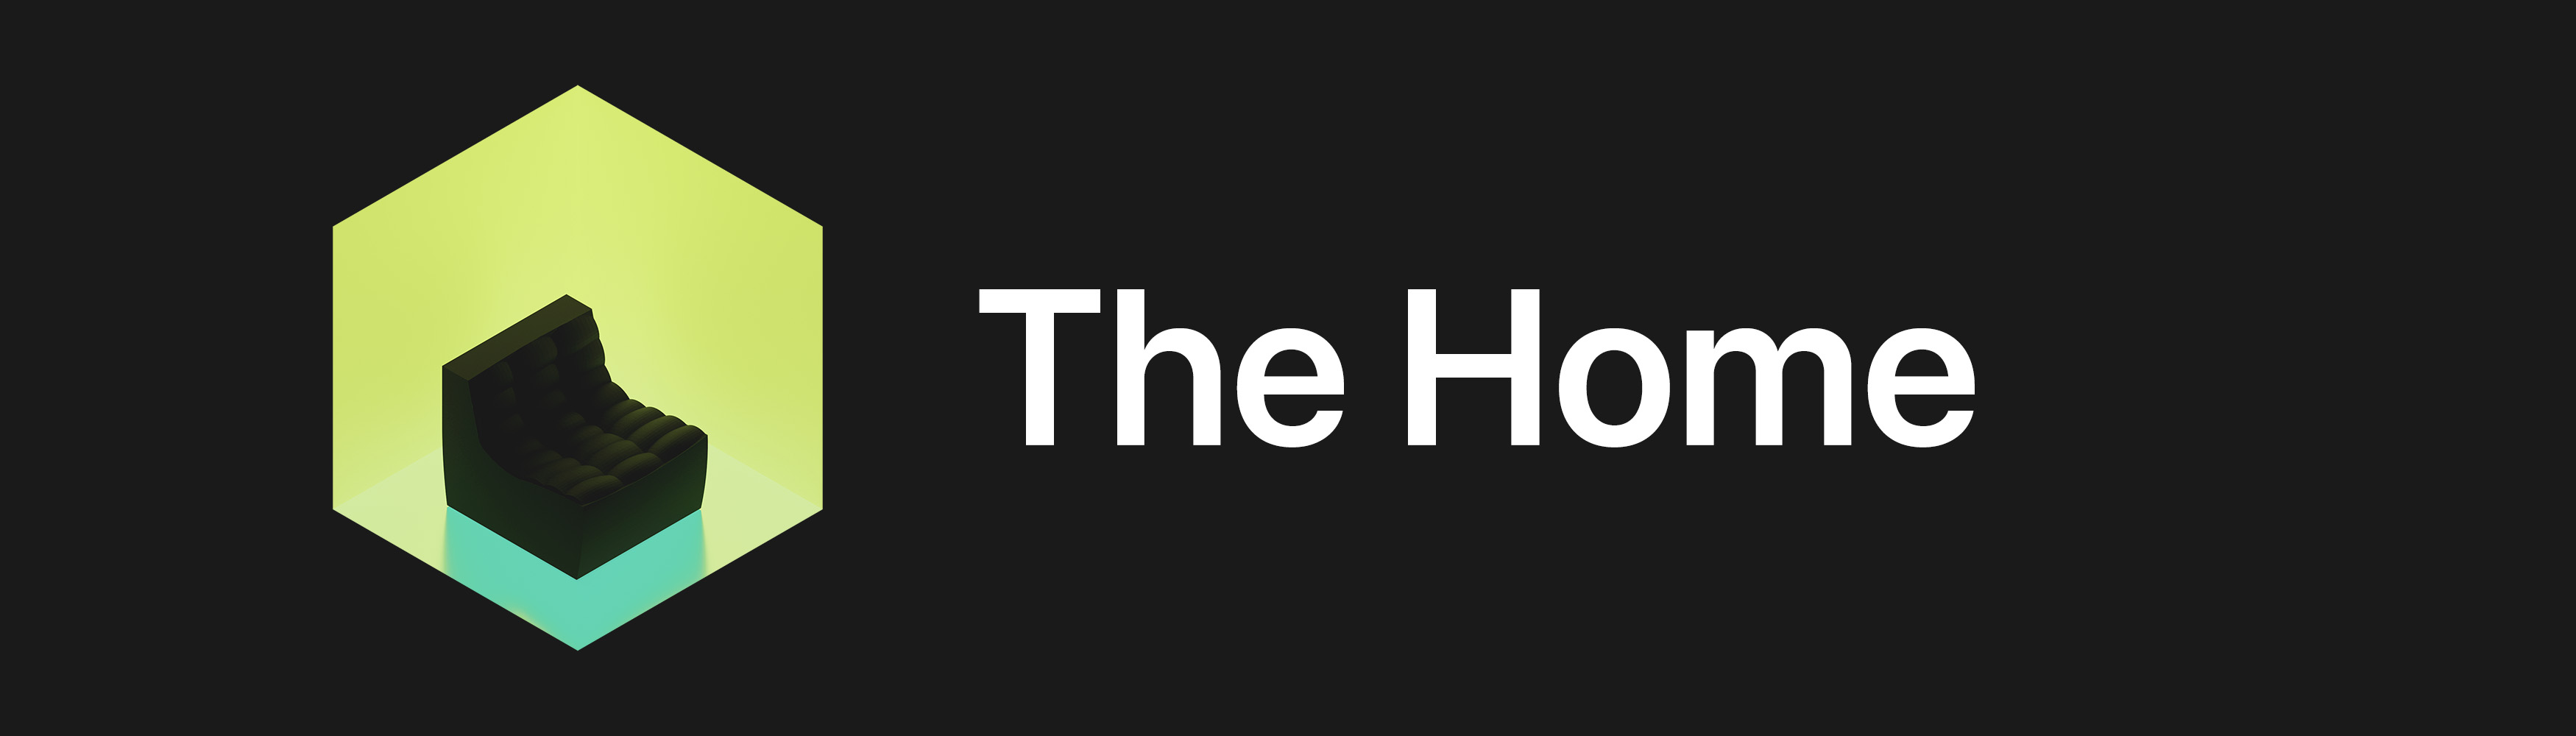 Title: The Home